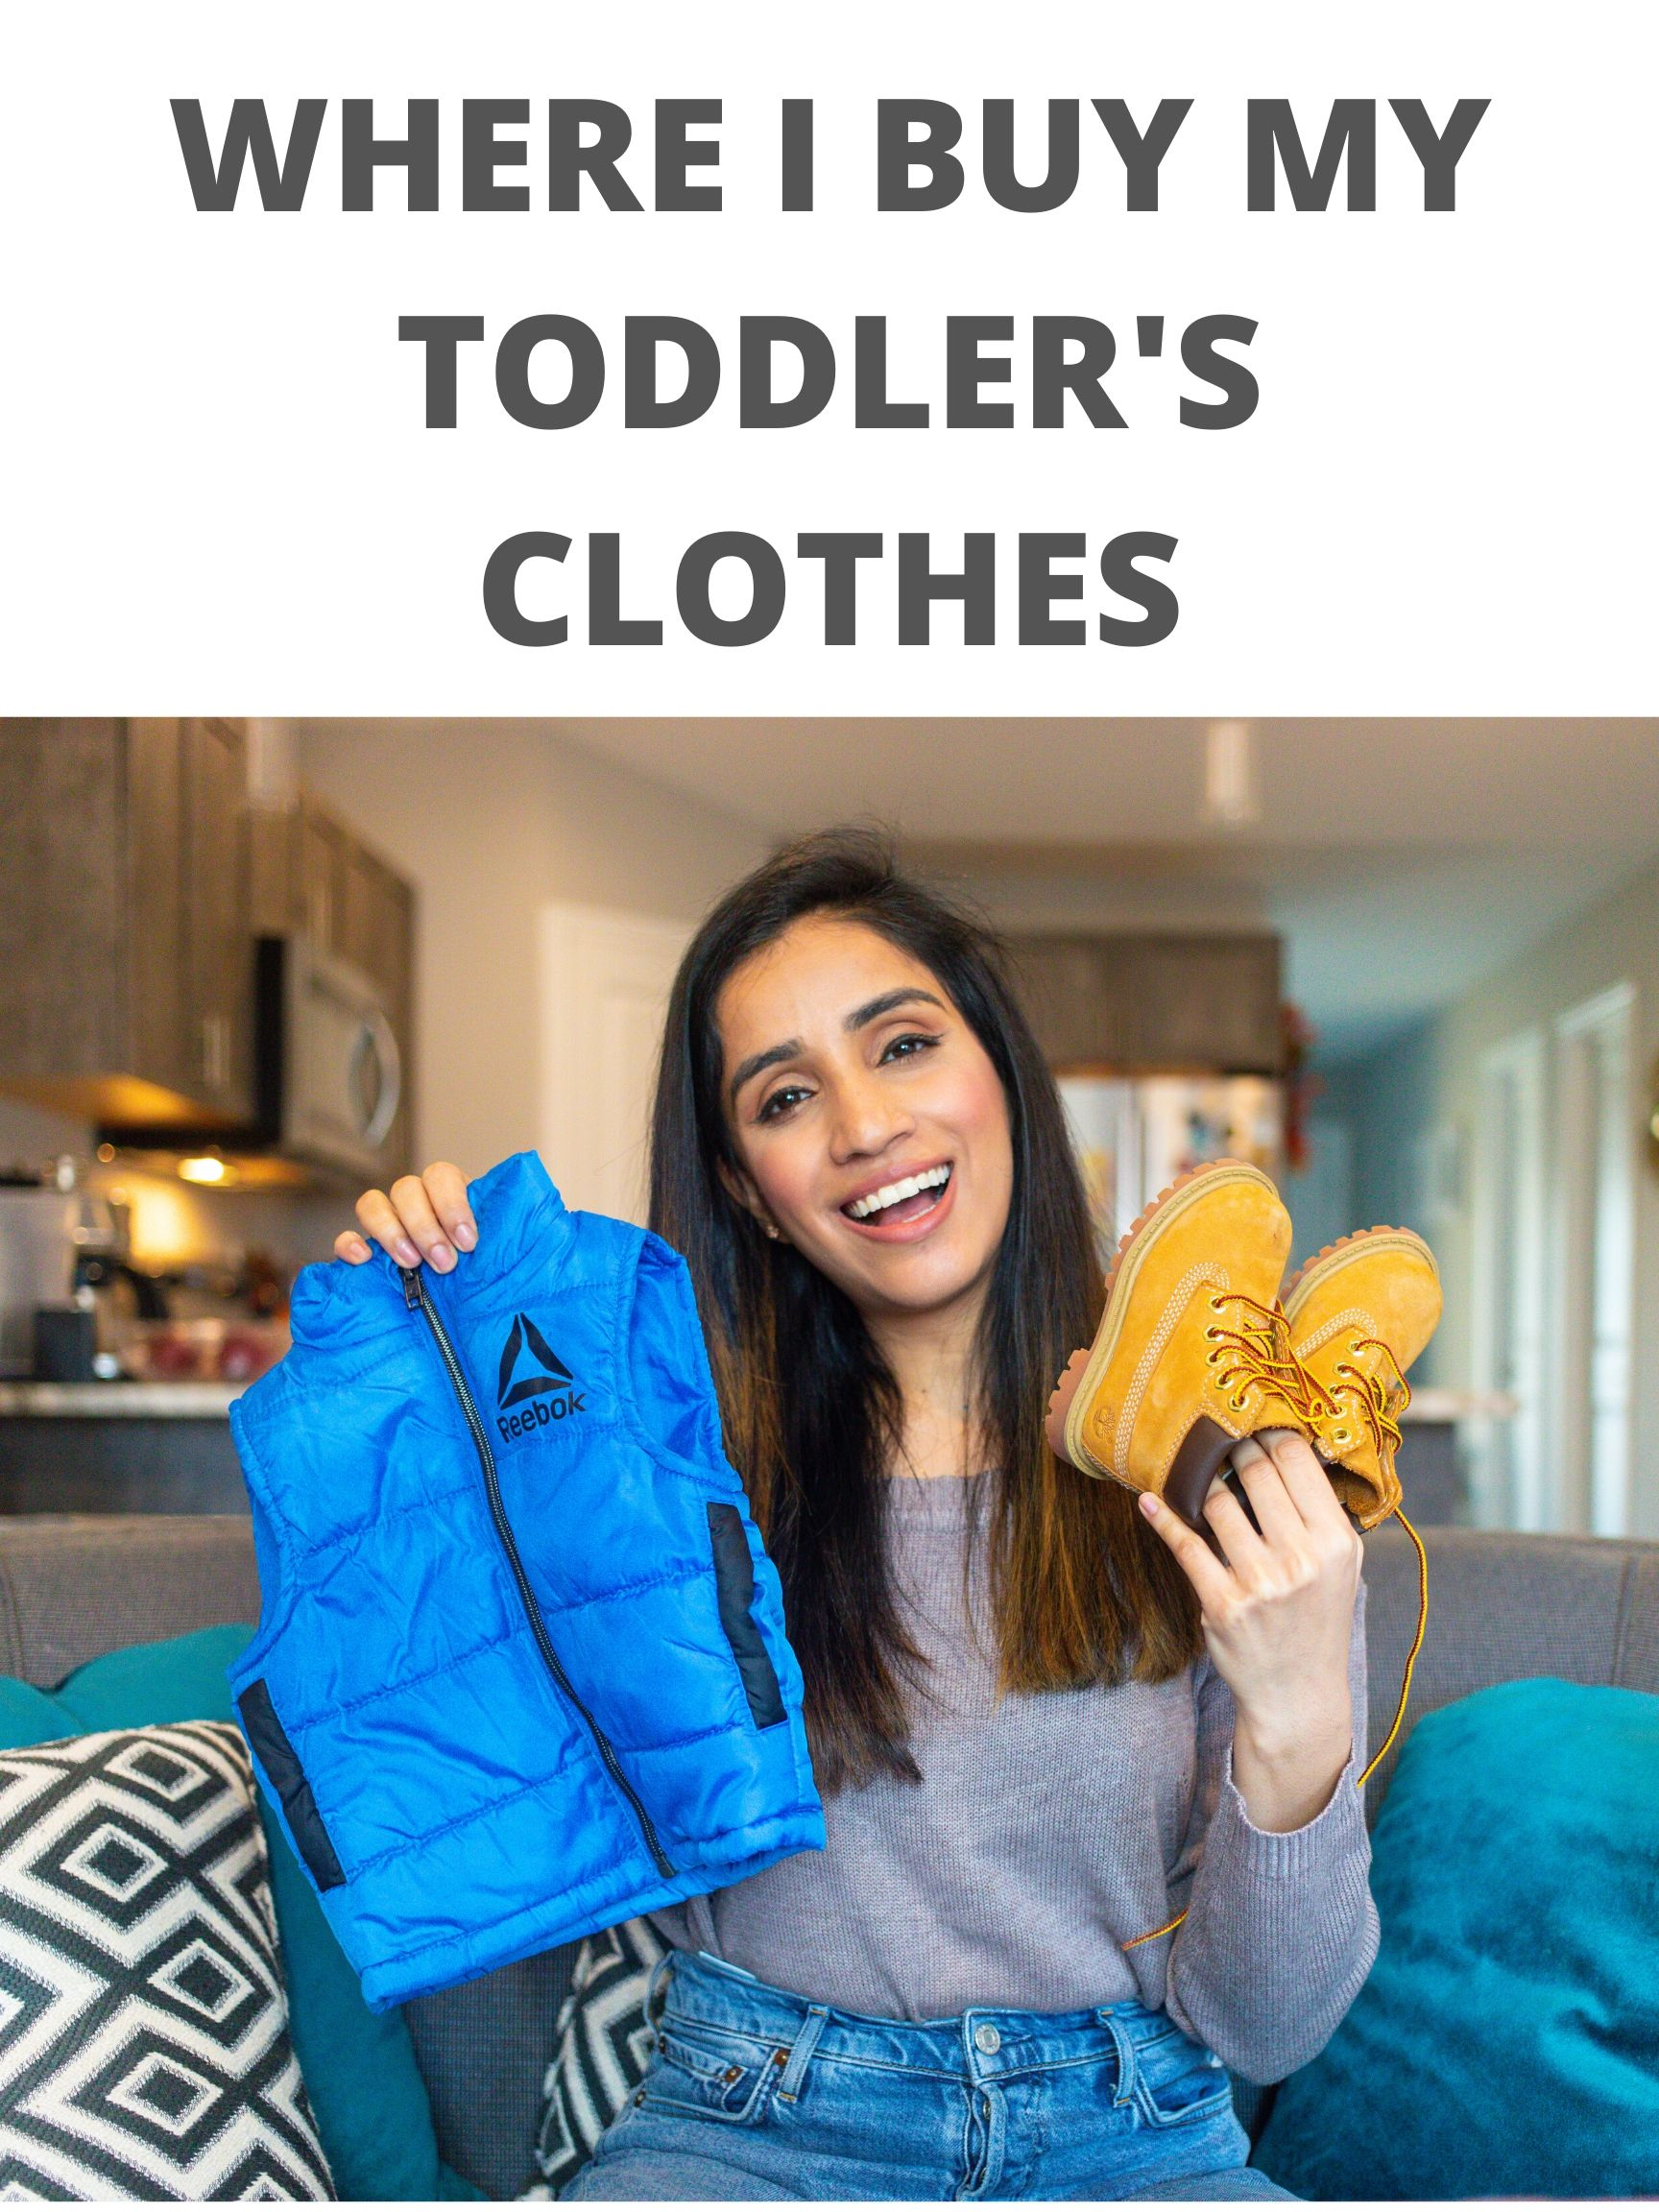 Where I Buy my Toddler's Clothes Affordable cheap best stores to buy babys clothing haul baby 1